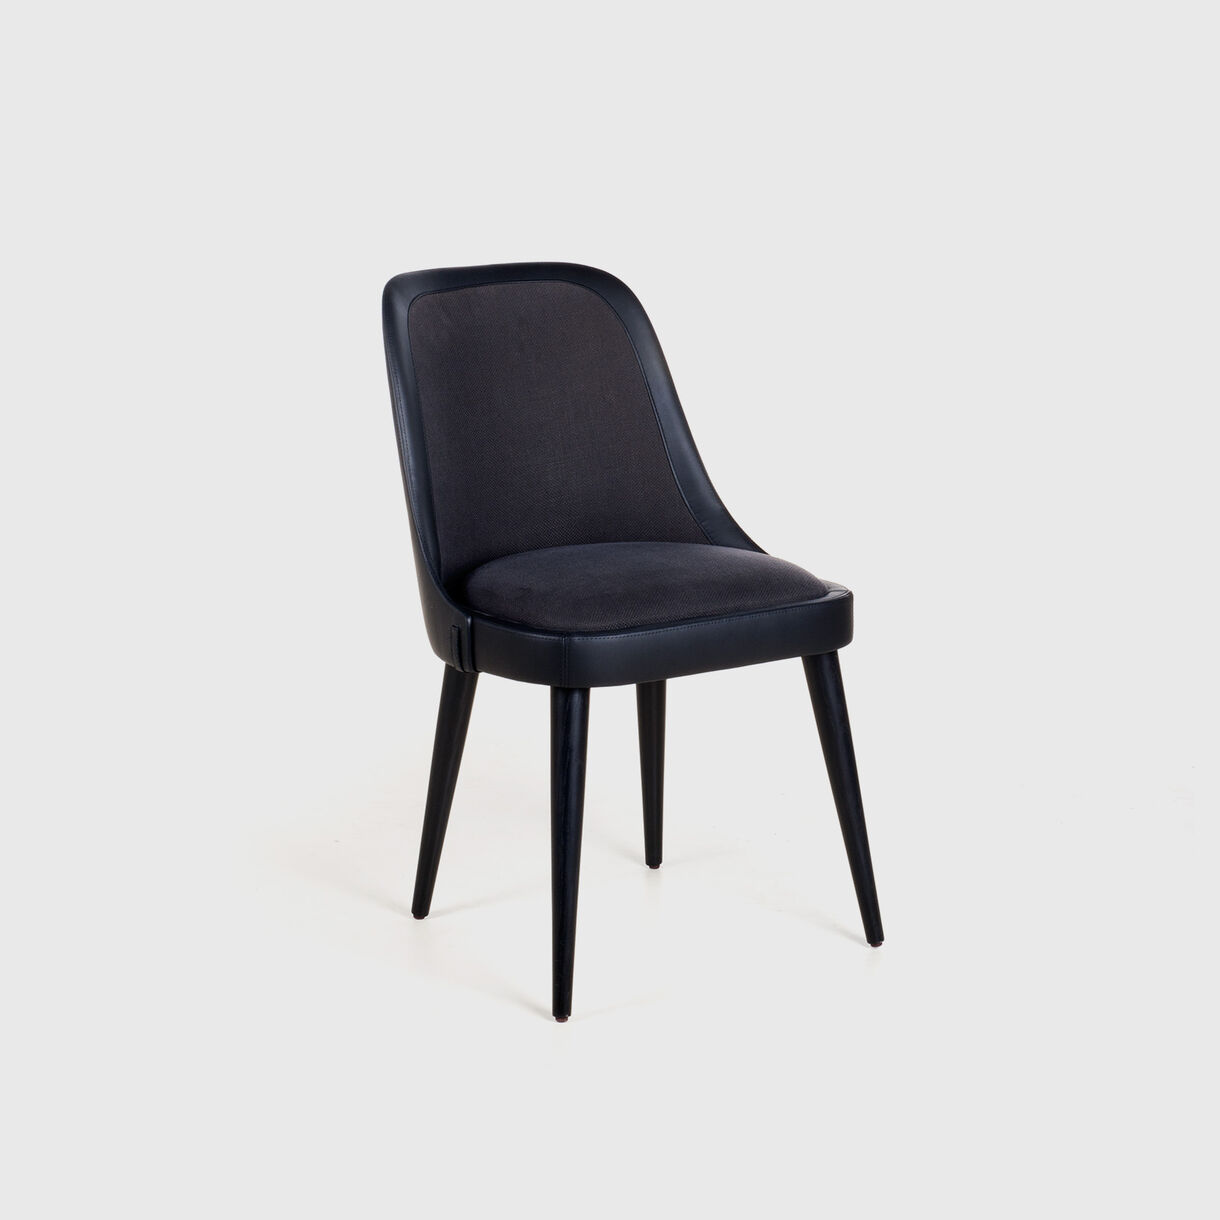 Laval Leather Chair, Remix 183 & Saddle Leather